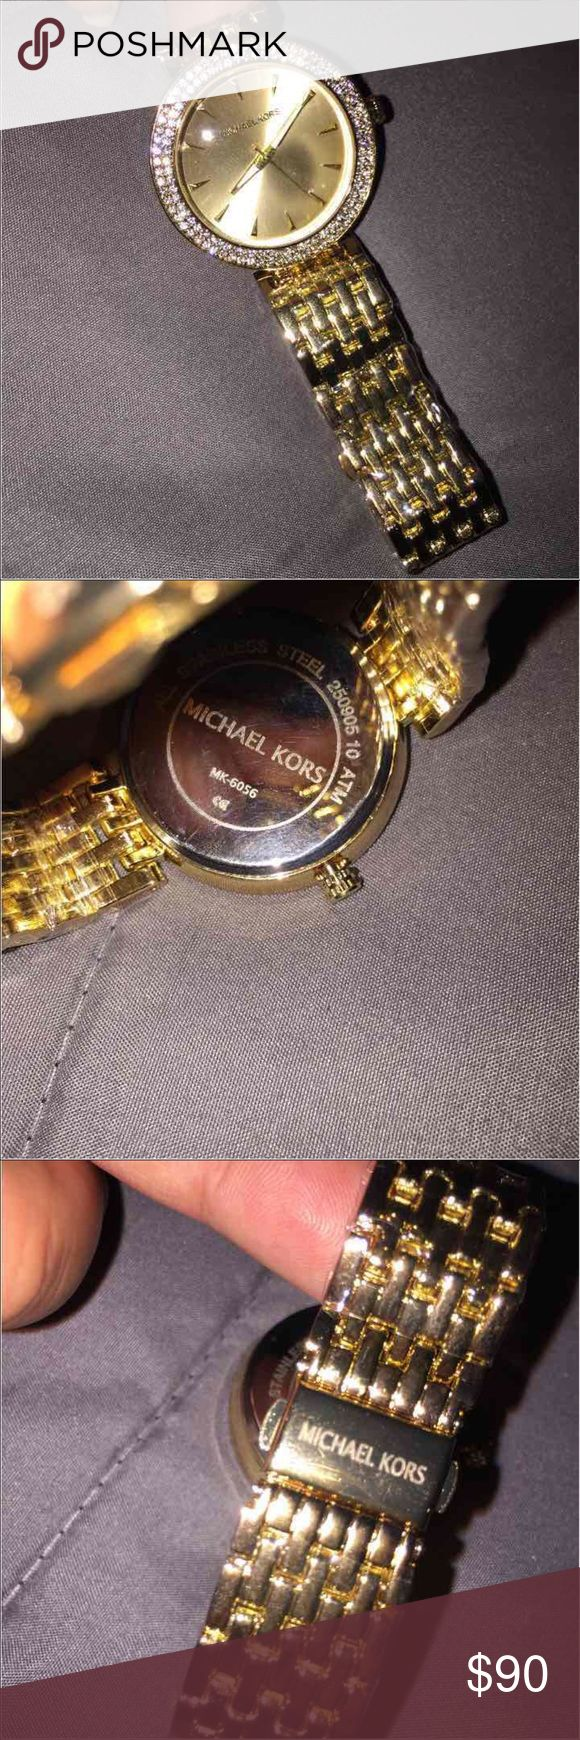 Michael Kors watch Gold Michael Kors watch Accessories Watches